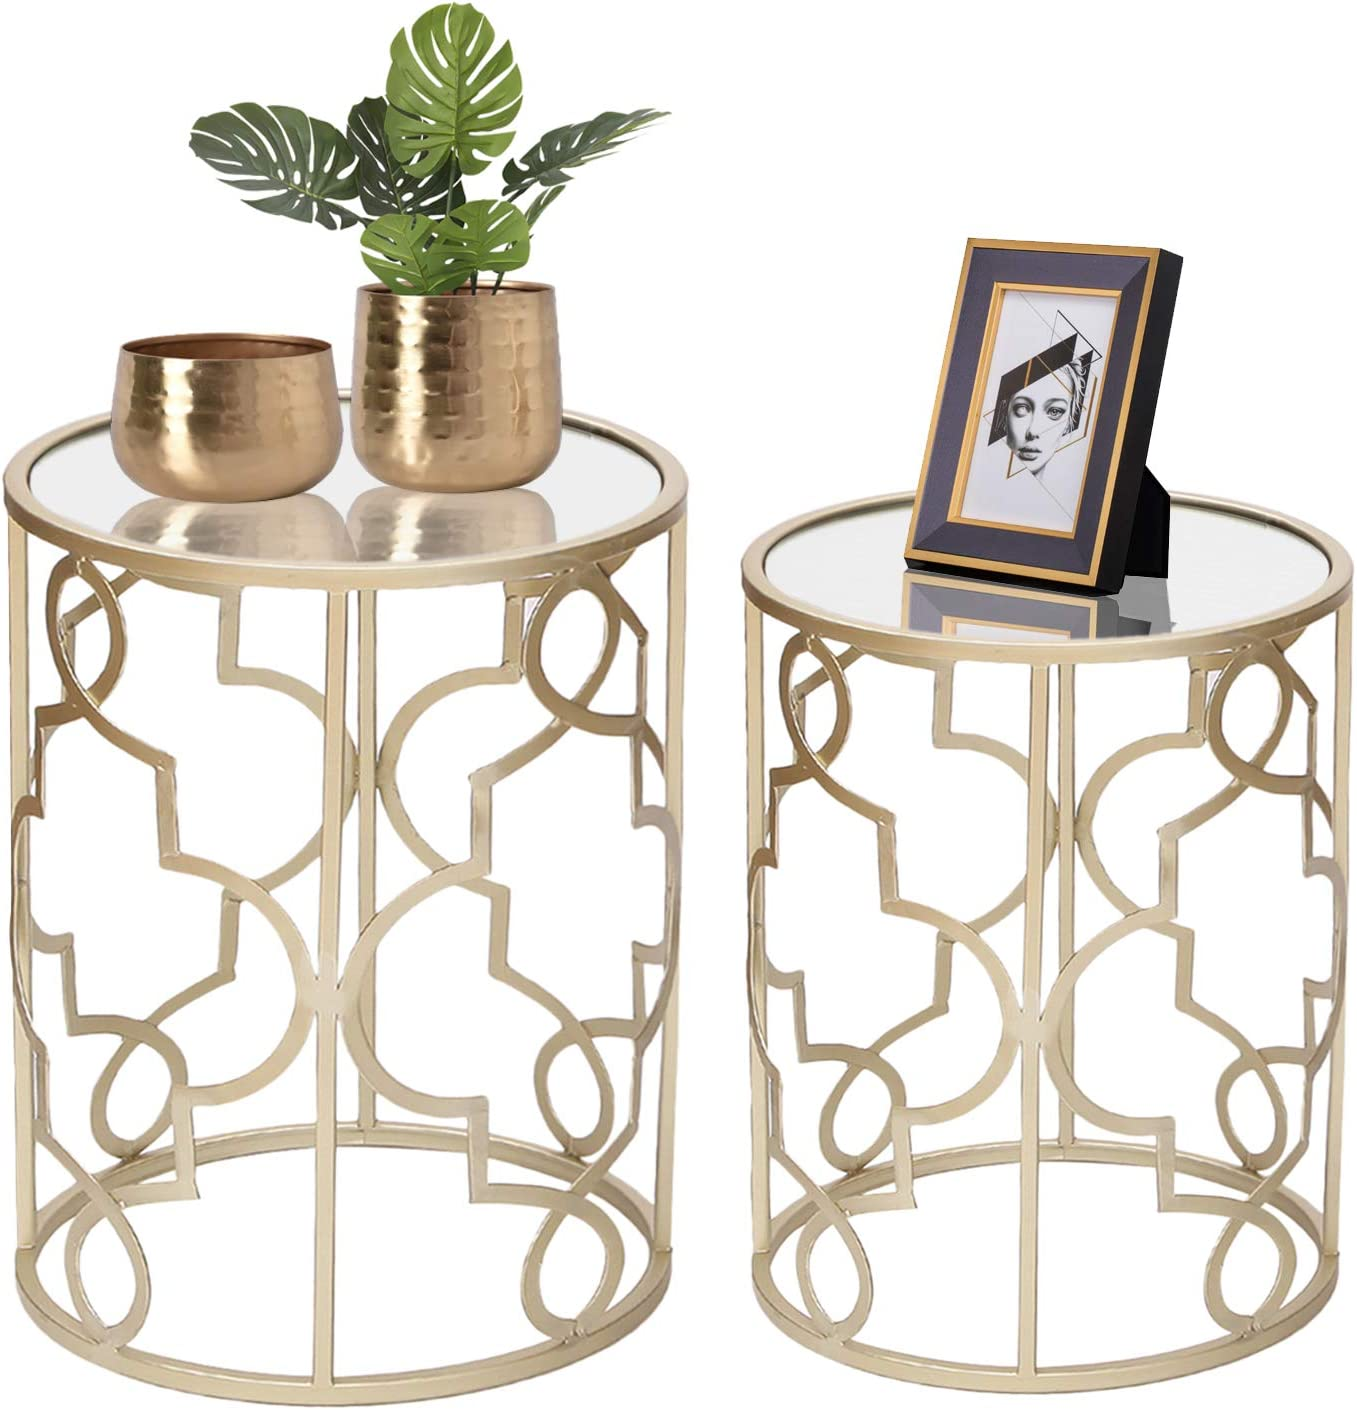 Joveco End Tables Set of 2- Light Champagne Gold Side Tables Elegant Coffee Table Nightstands Stools- Accent Nesting Side Tables for Living Room Bedroom and Entryway